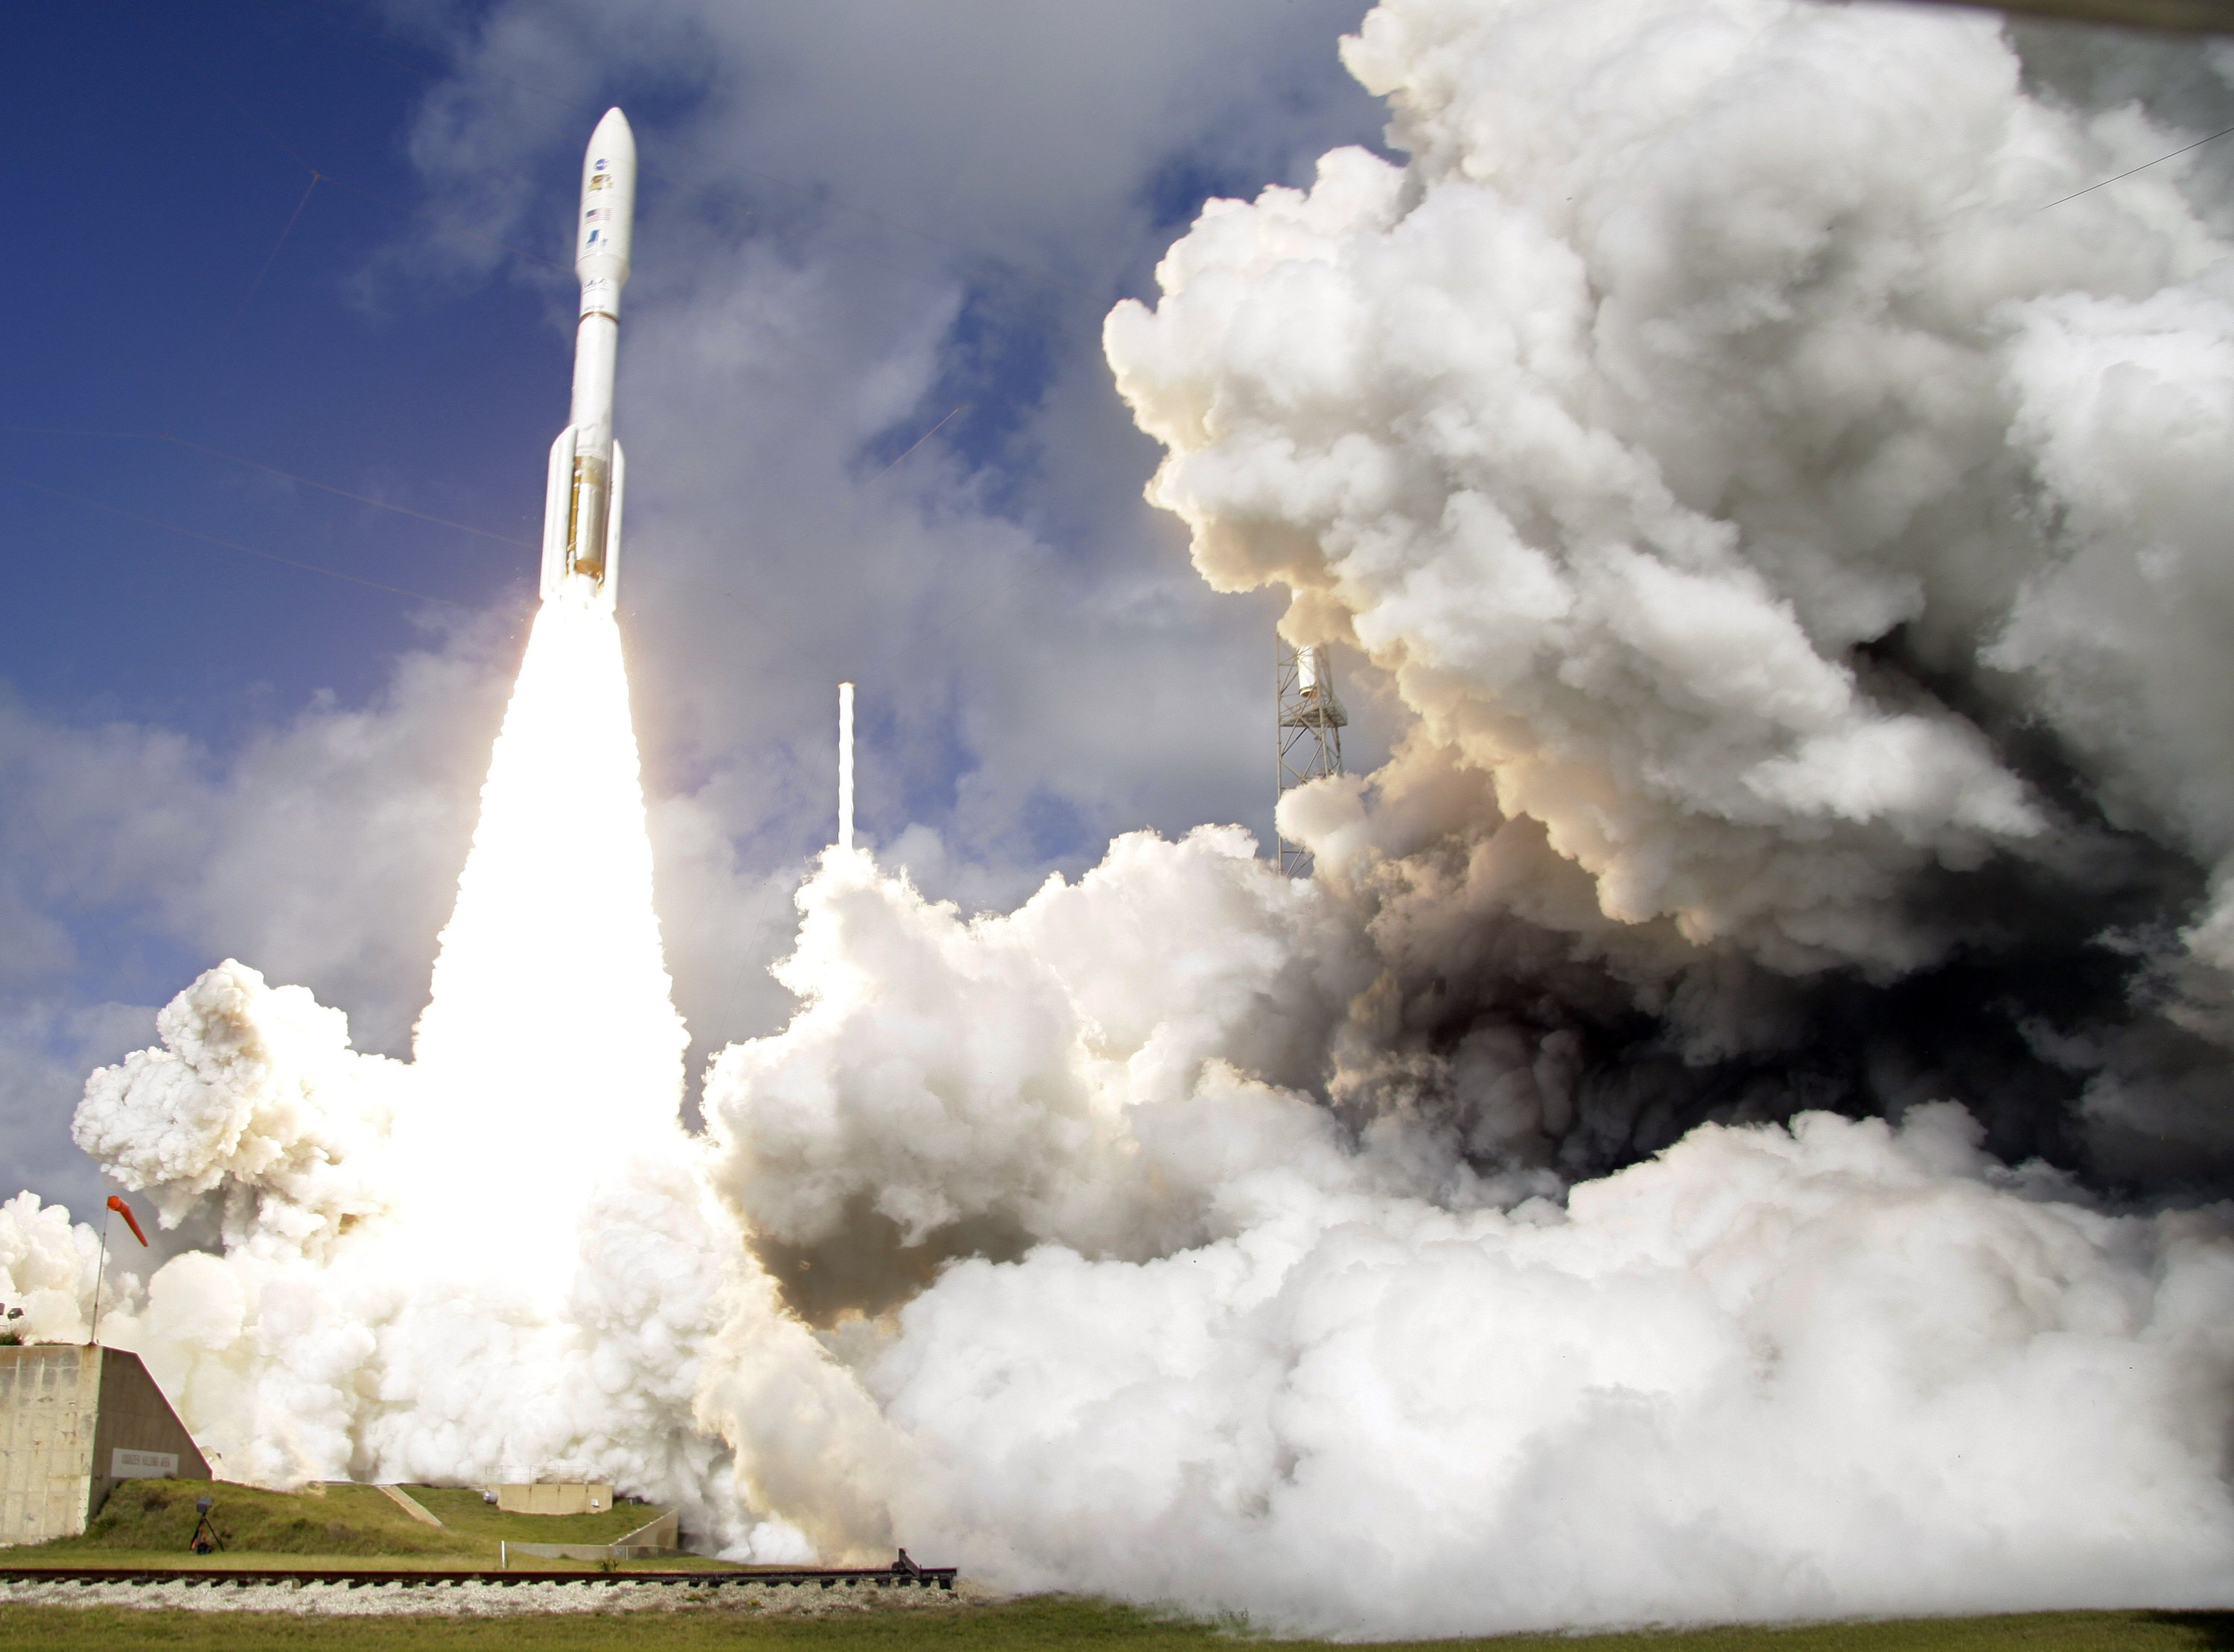 In this Saturday, Nov. 26, 2011 file photo, a United Launch Alliance Atlas V rocket carrying NASA's Mars Science Laboratory (MSL) Curiosity rover lifts off from Launch Complex 41at Cape Canaveral Air Force Station in Cape Canaveral, Fla. (AP Photo)